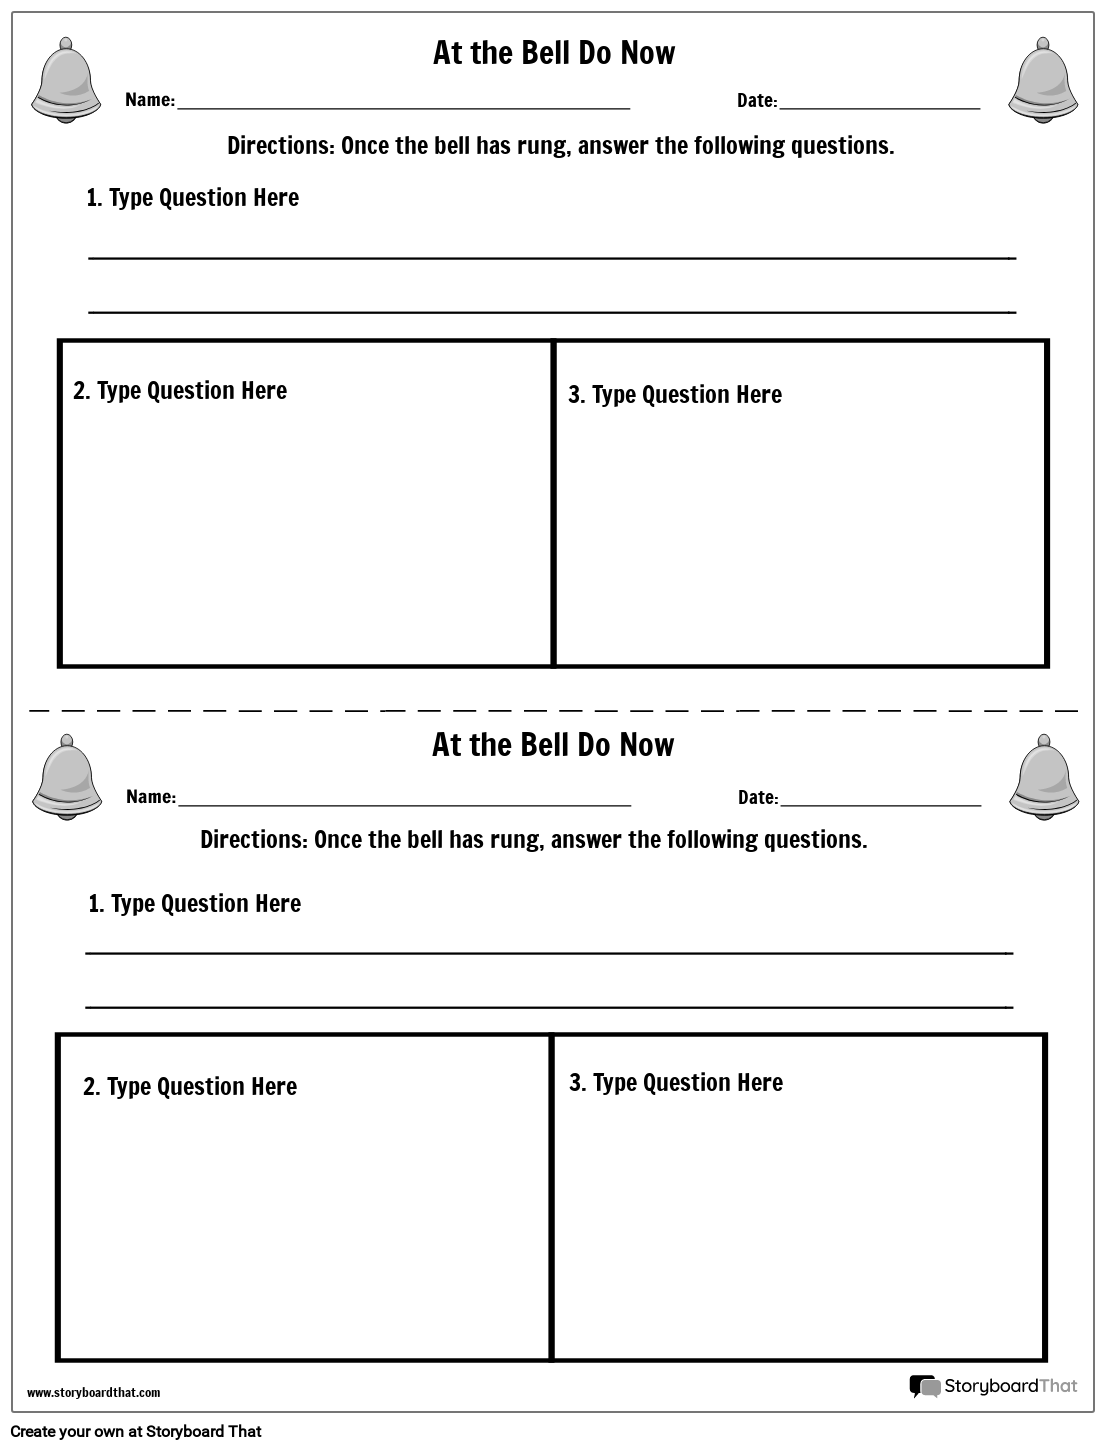 image about Free Printable Bell Ringers called Make Bell Ringer Functions Bell Ringer Template